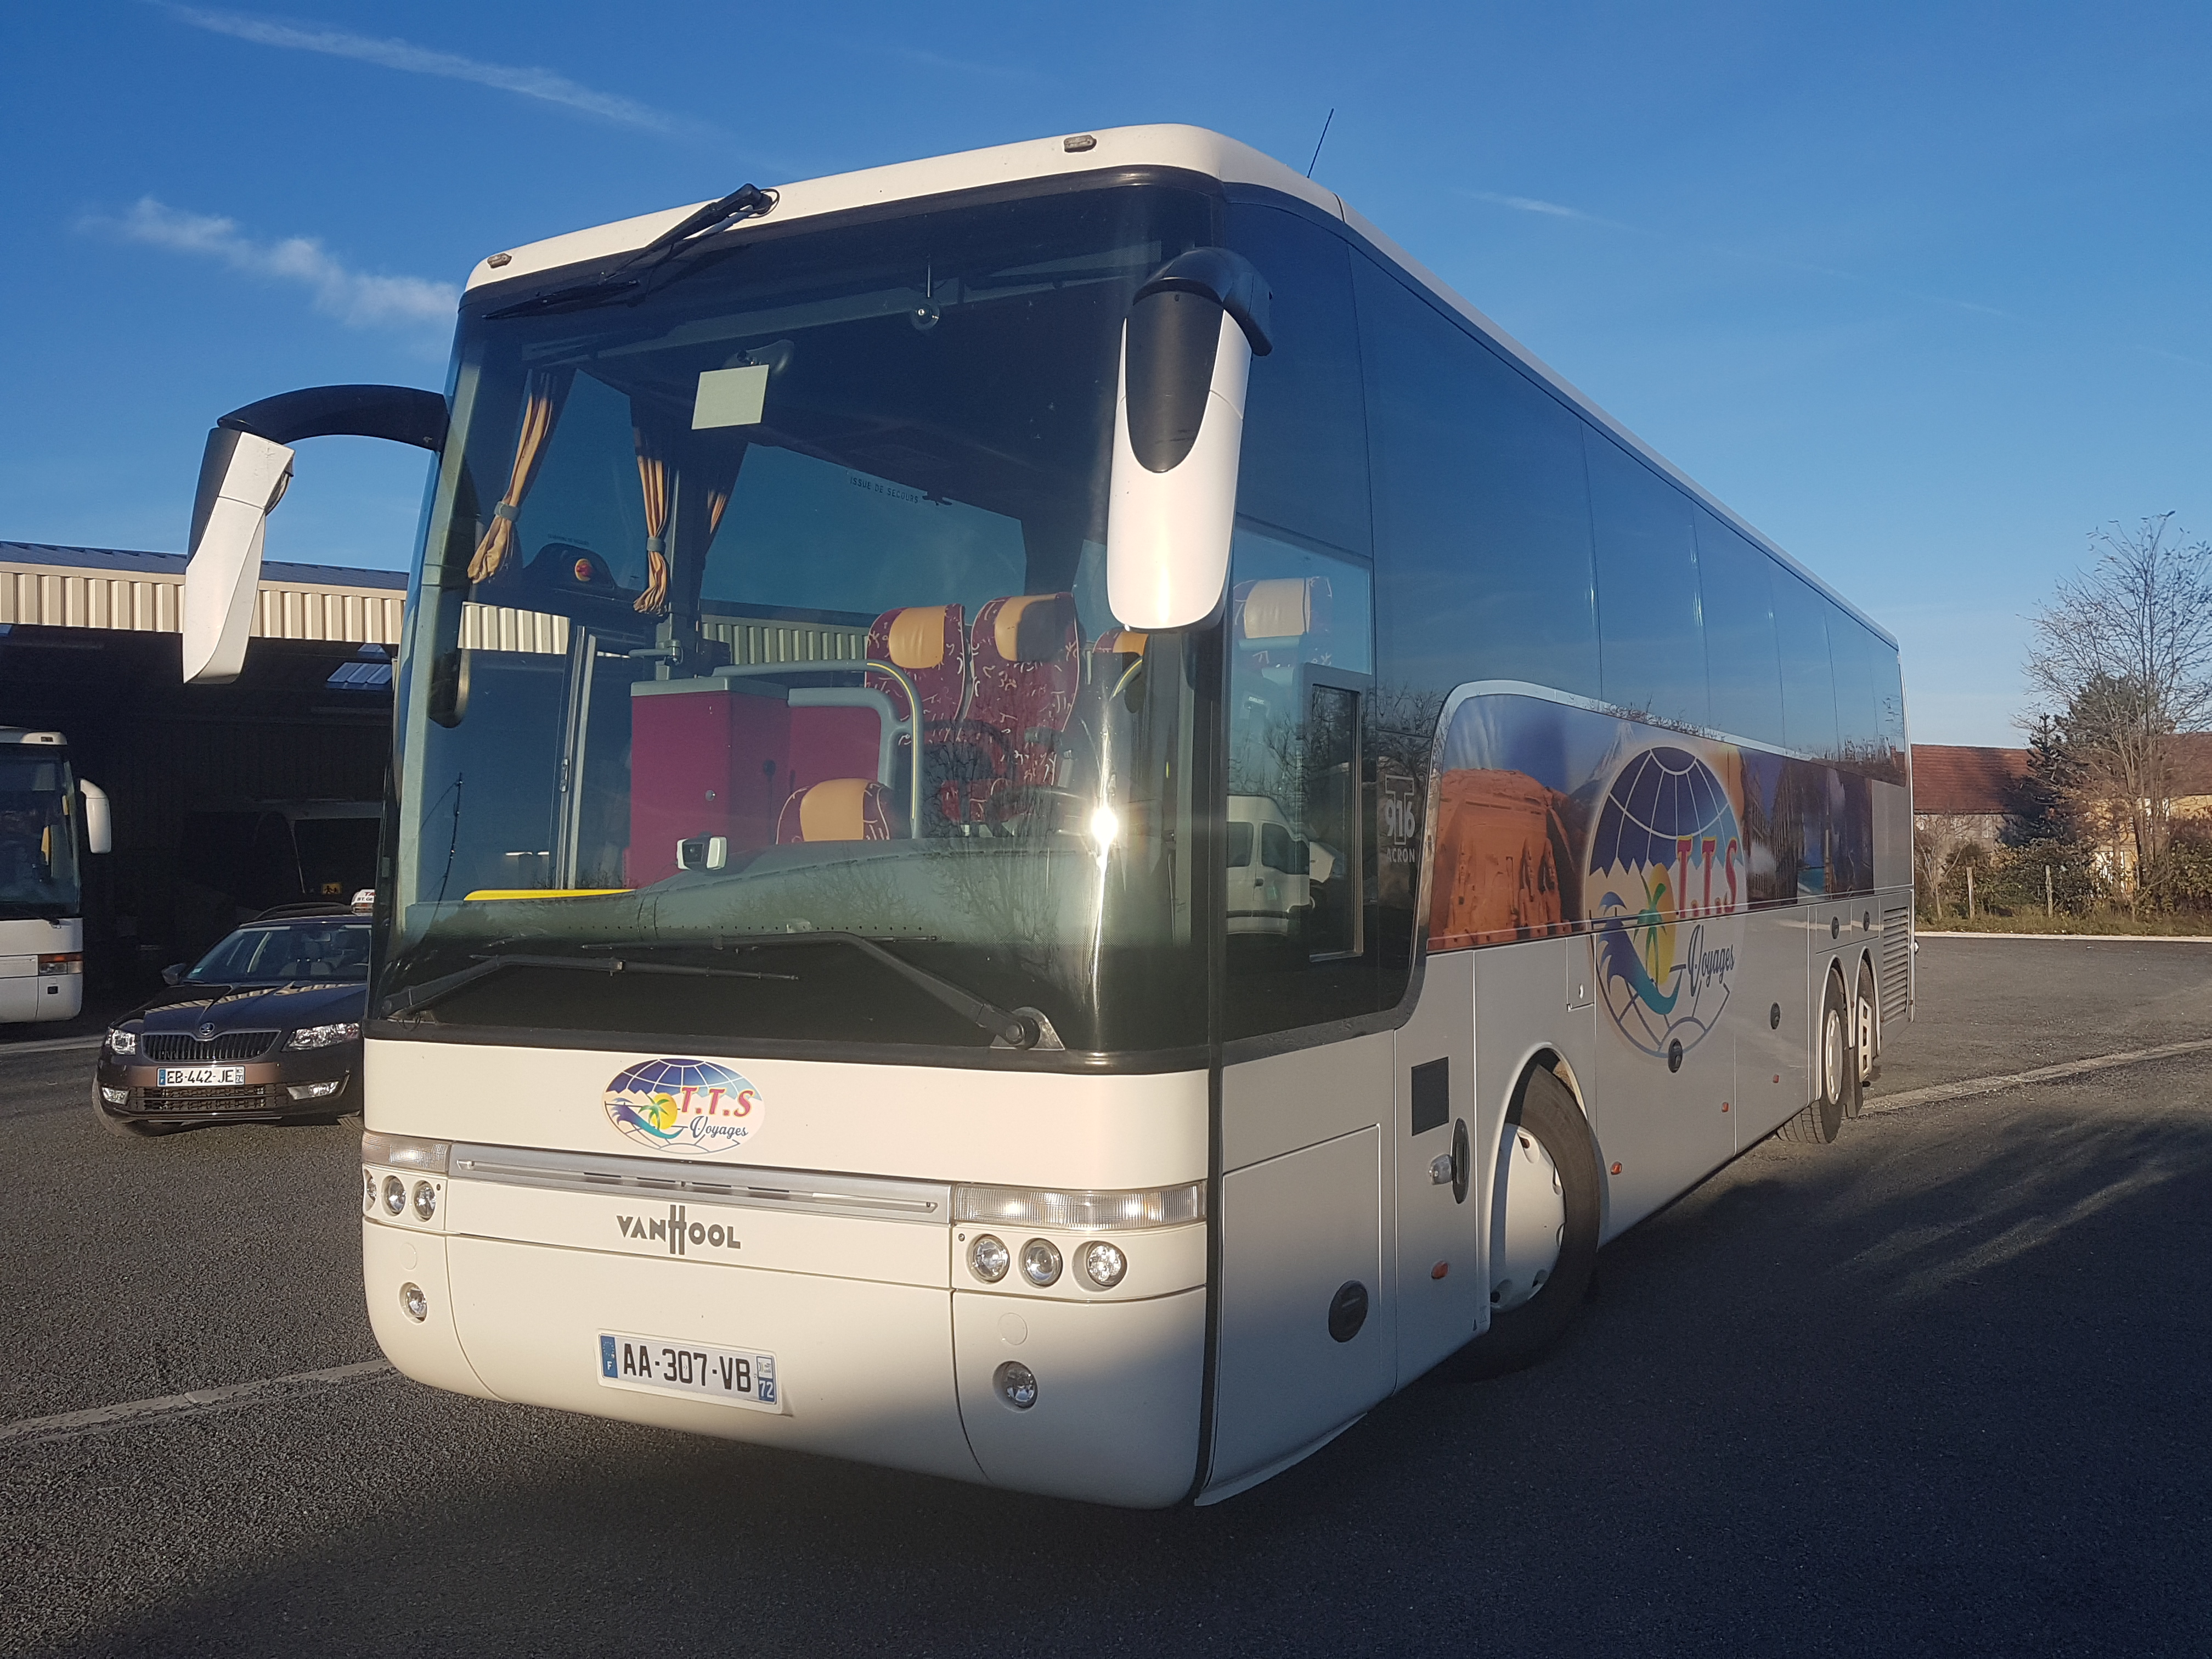 TTS Transports Taxis Salignacois